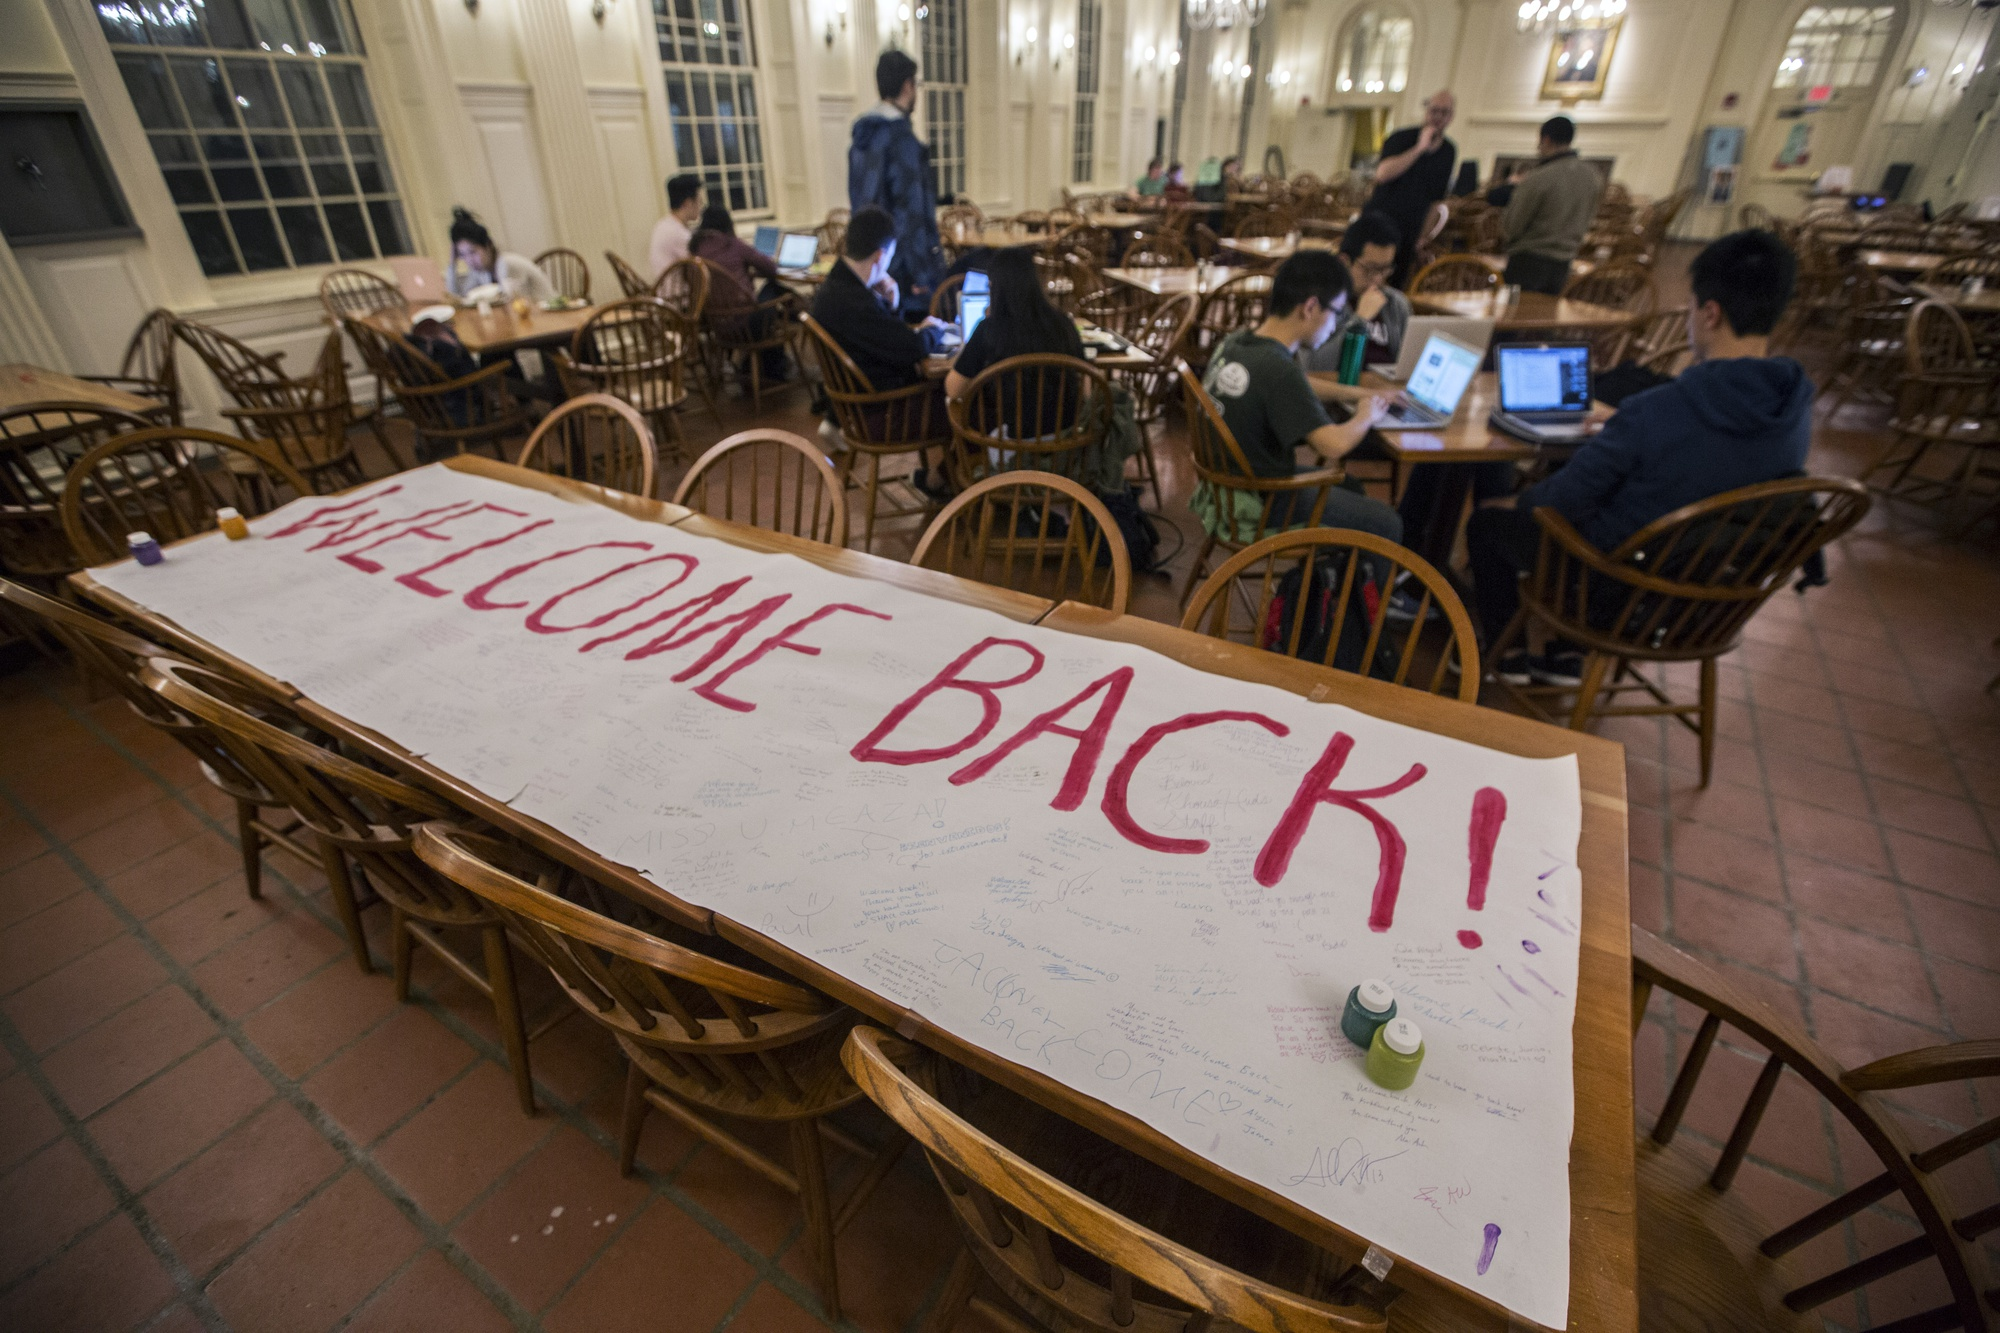 """""""Welcome back! So in awe of your courage and determination,"""" wrote one student on a welcome banner in Kirkland dining hall. Students celebrated HUDS workers returning to the dining halls after the 22-day long strike which ended Wednesday."""